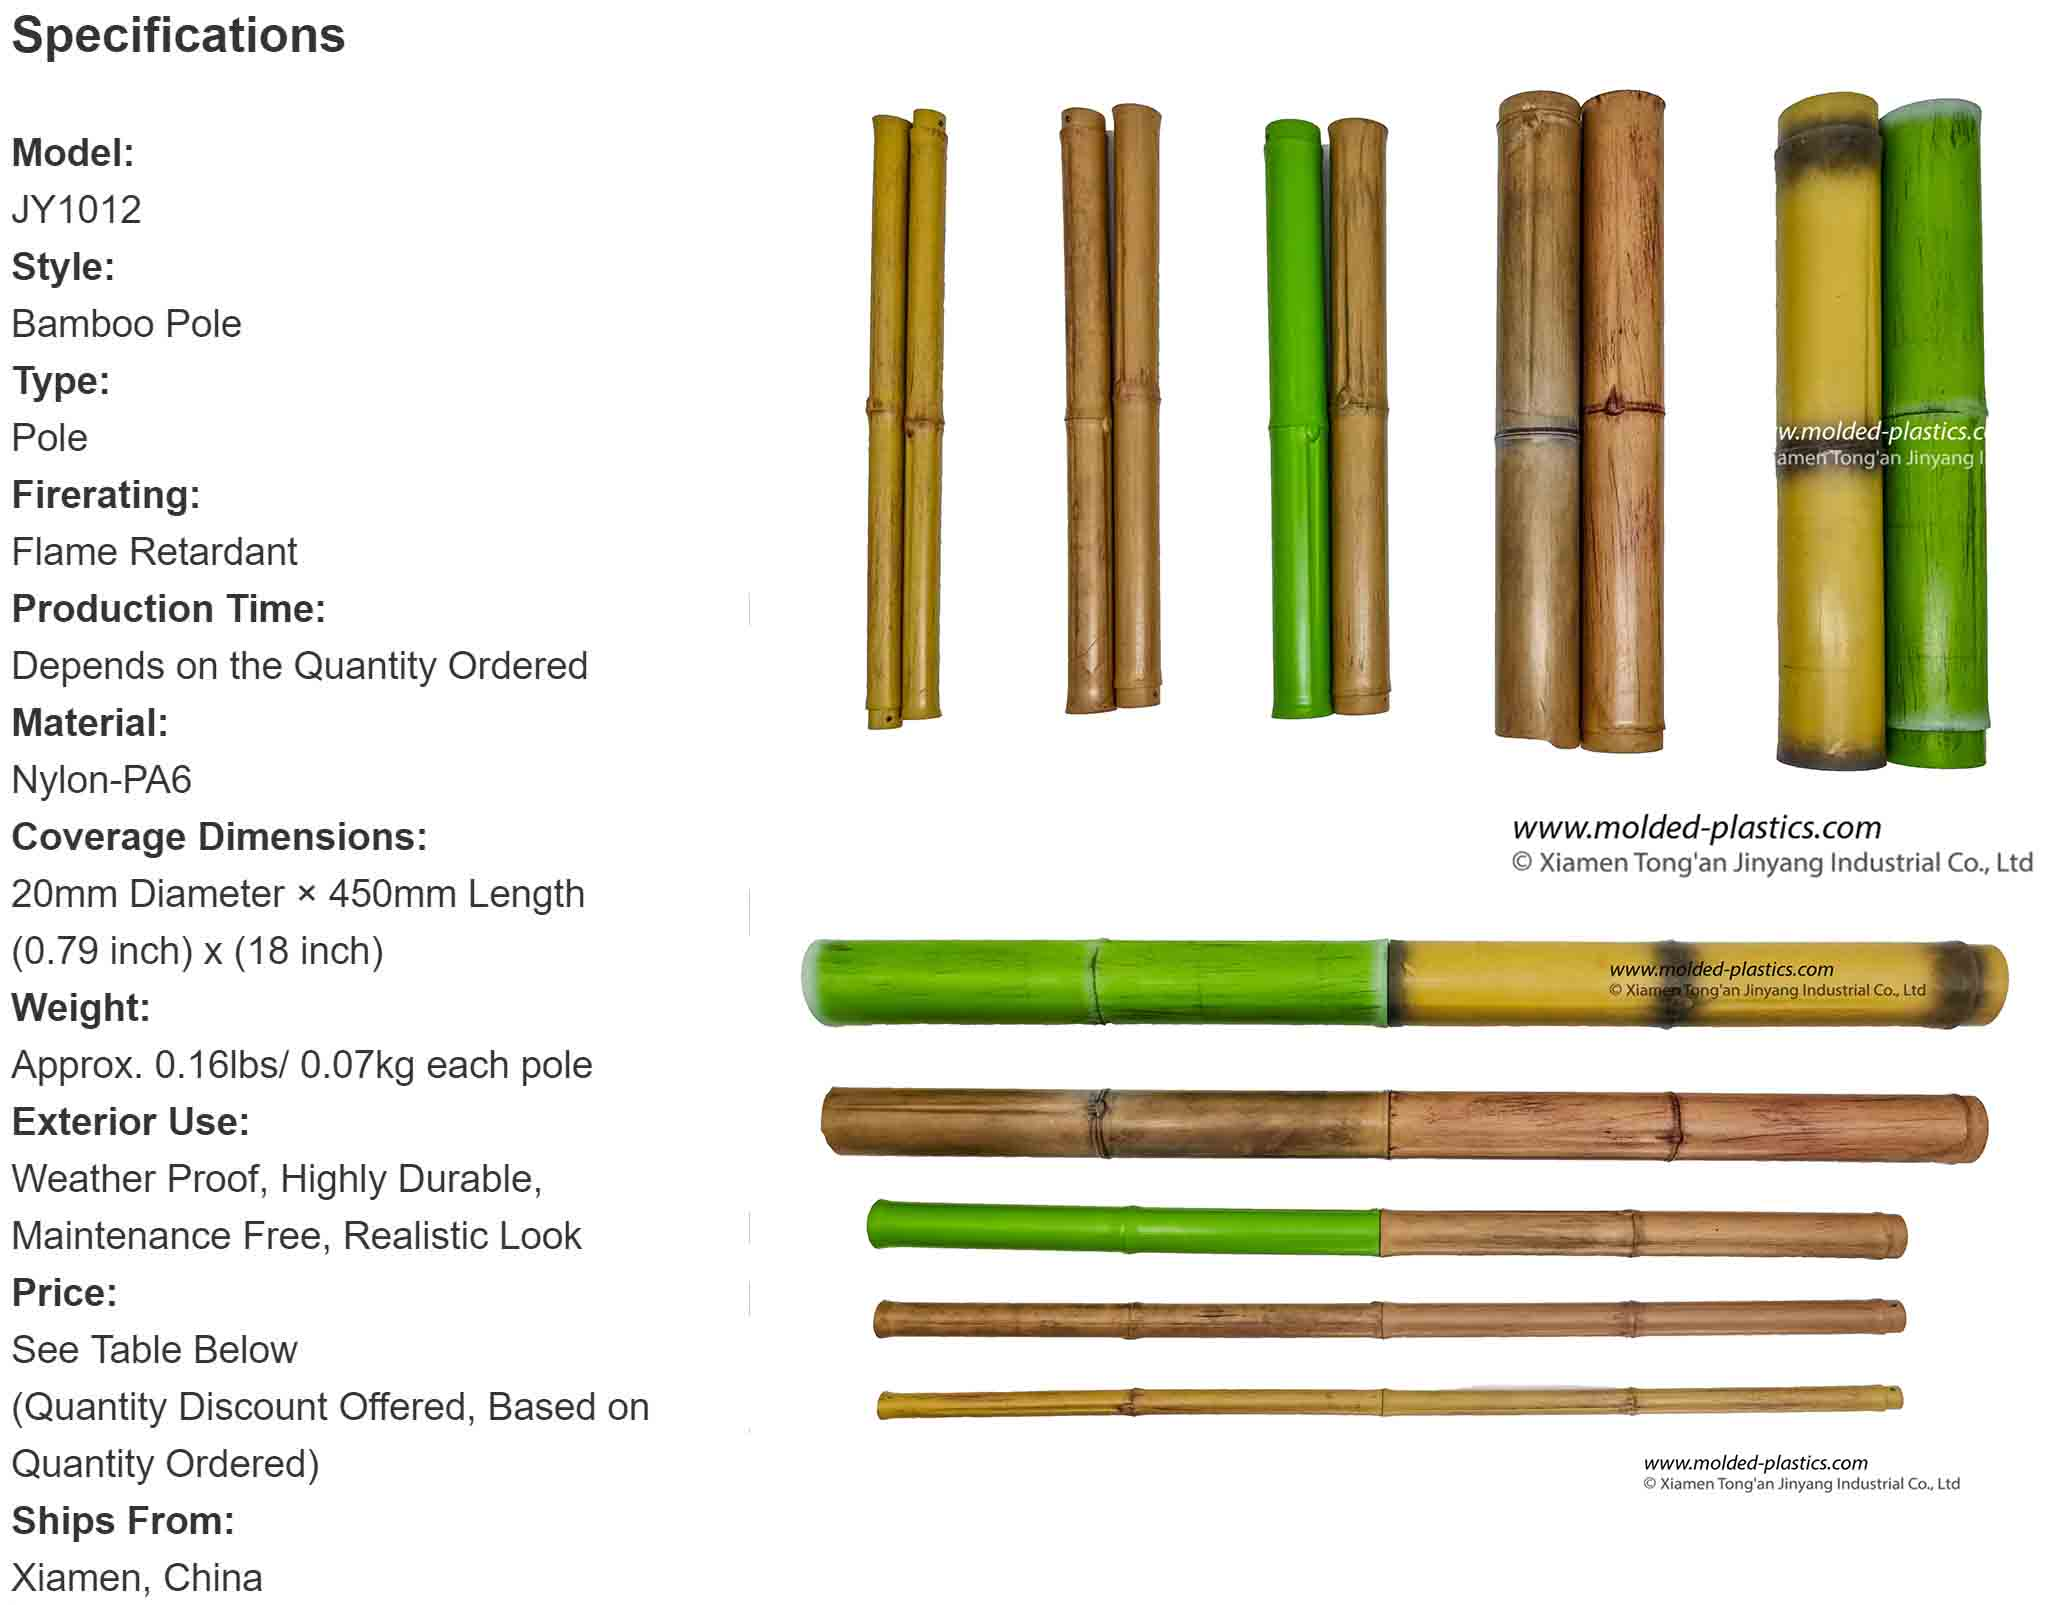 synthetic <a href=https://www.molded-plastics.com/Artificial-Bamboo.html target='_blank'>Bamboo poles</a> description